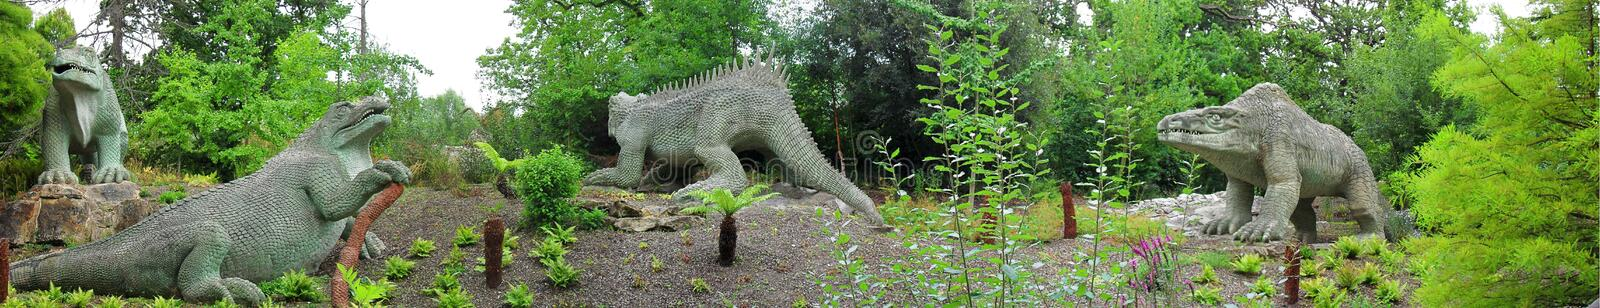 Dinosaurussen Crystal Palace Park London - panorama royalty-vrije stock foto